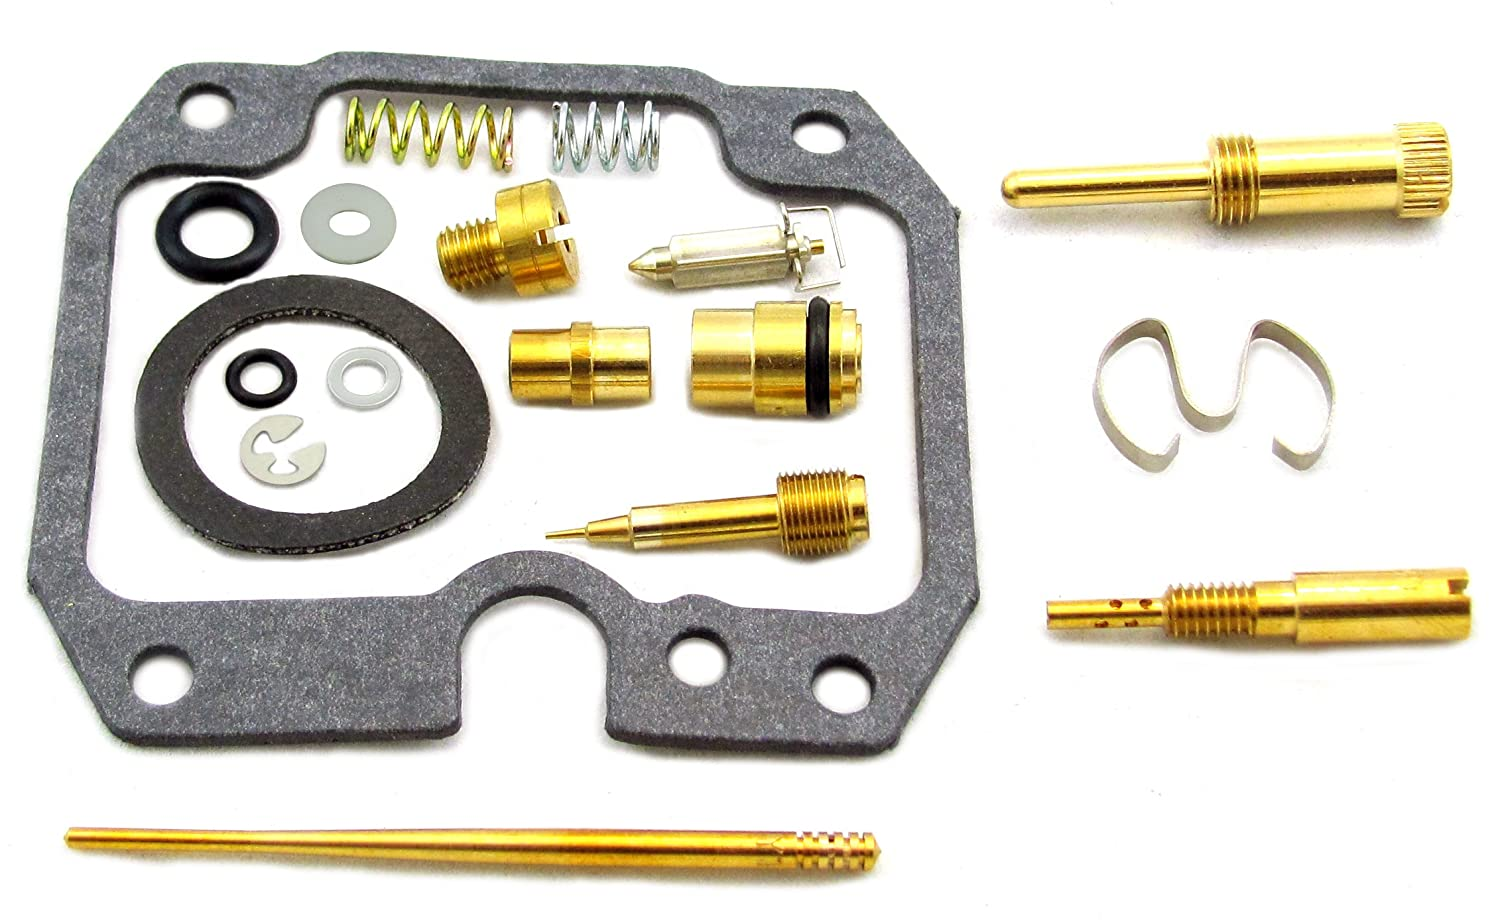 Freedom County ATV FC03101 Carburetor Rebuild Kit for Kawasaki KLF220A Bayou